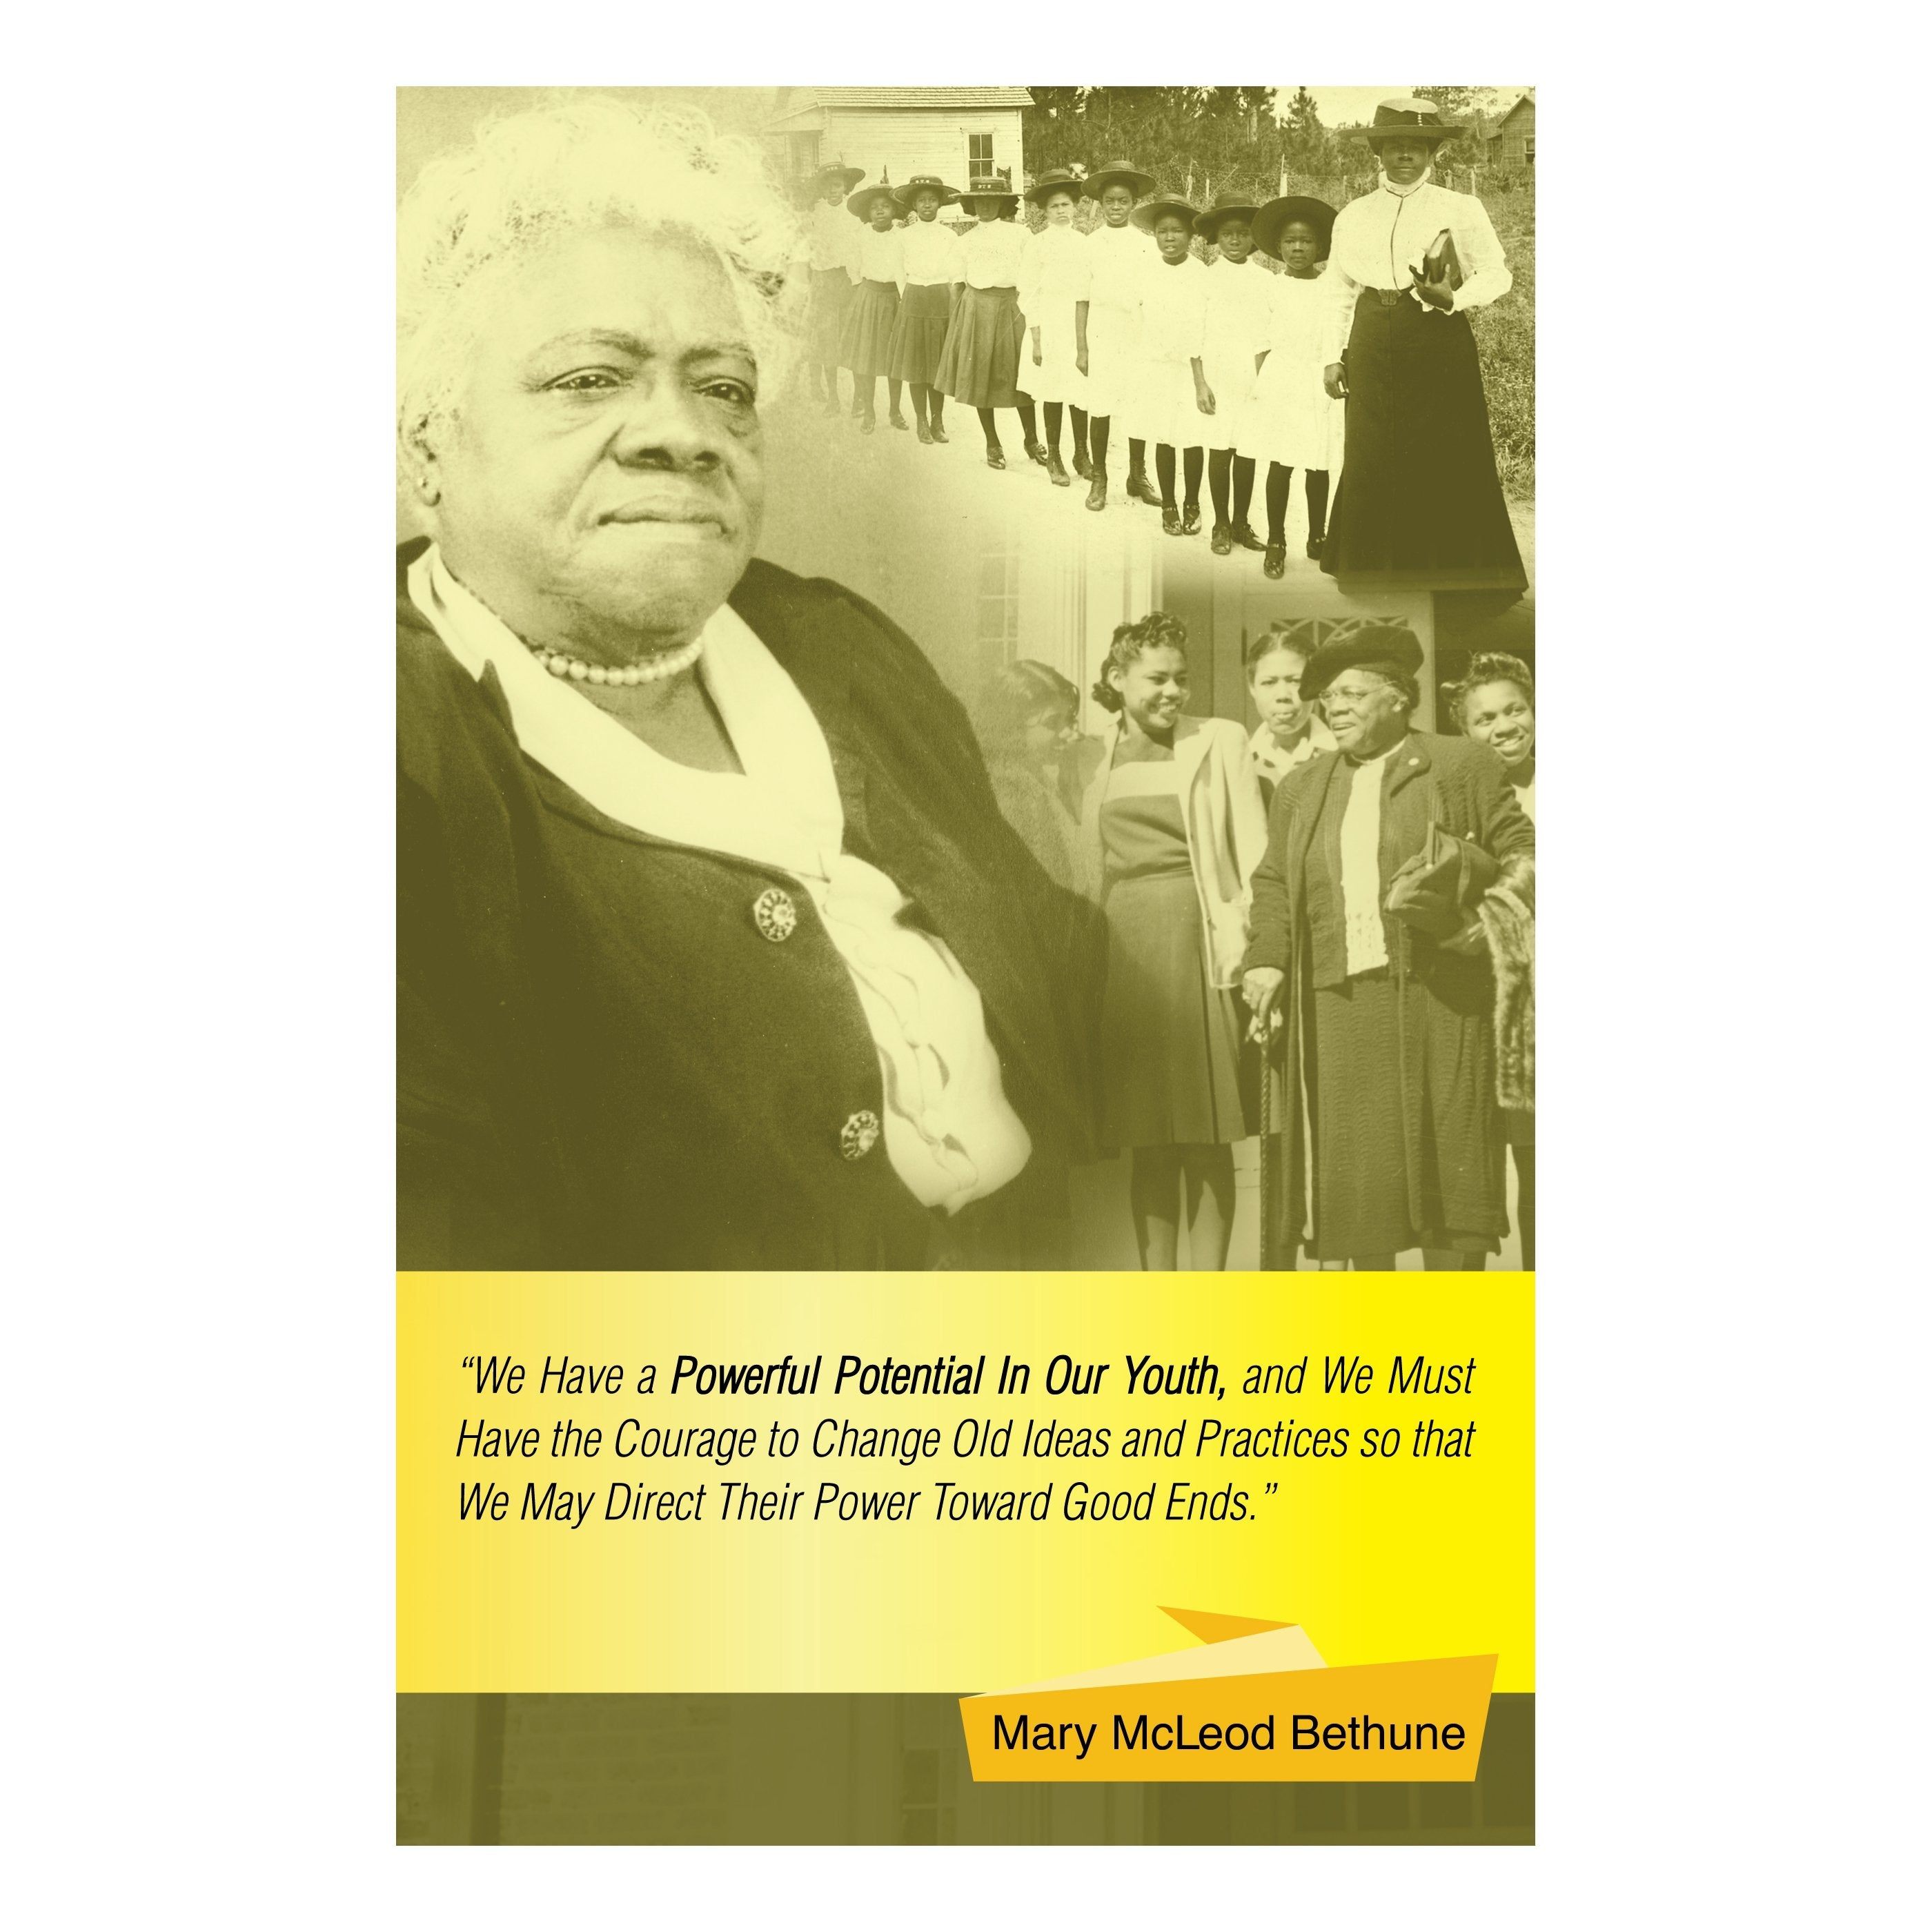 Mary McLeod Bethune: In Our Youth by Sankofa Designs